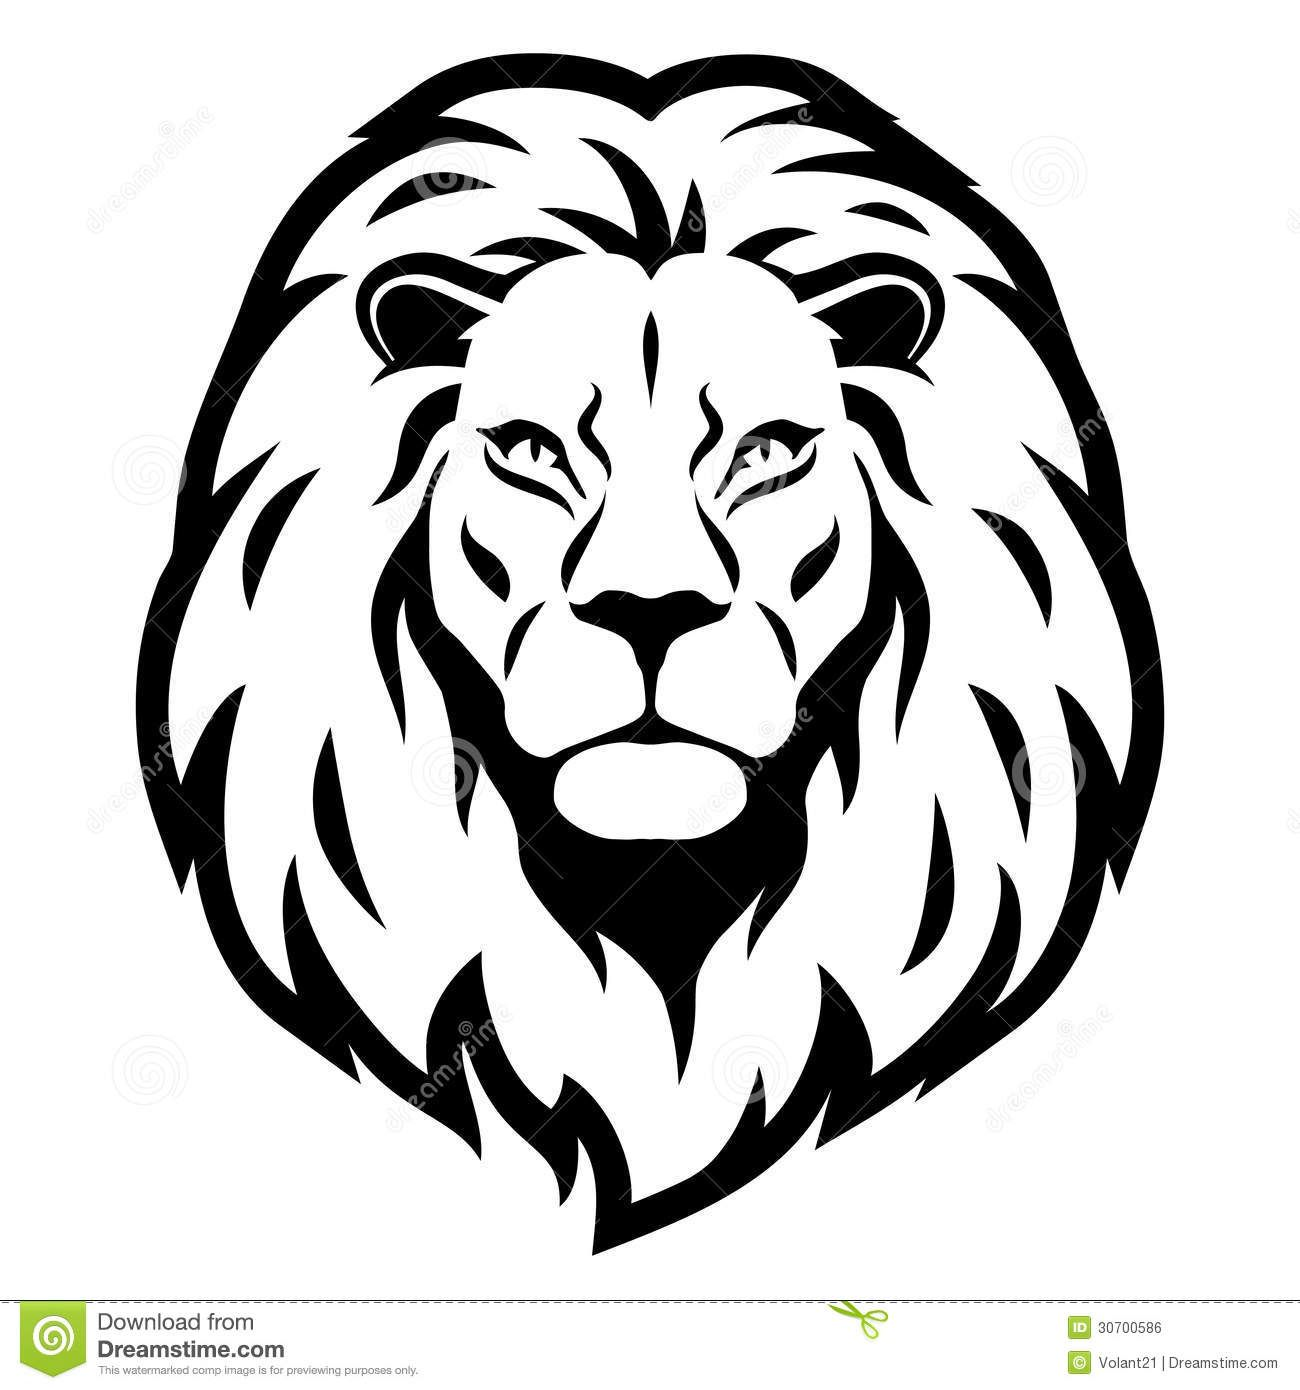 Lion Face Outline Images / Polish your personal project or design with these lion face transparent png images, make it even more personalized and more attractive.